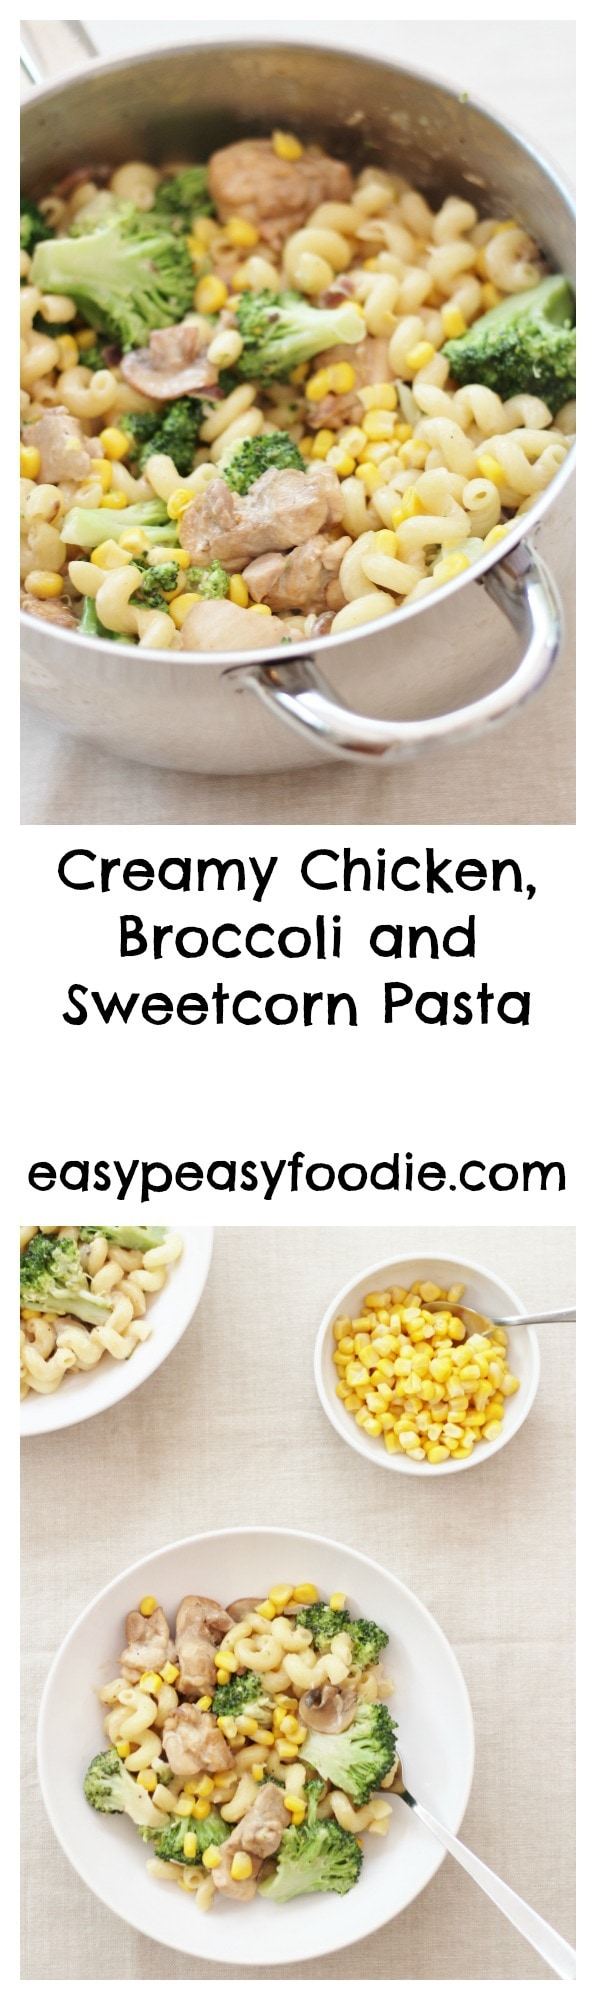 Need a new super easy, midweek crowd-pleaser? I have the answer: Creamy Chicken, Broccoli and Sweetcorn pasta – simple, delicious and ready under 30 minutes – what's not to like? #chicken #pasta #chickenpasta #broccoli #sweetcorn #easymidweekmeals #easymeals #midweekmeals #easydinners #dinnertonight #dinnertonite #familydinners #familyfood #easypeasyfoodie #cookblogshare